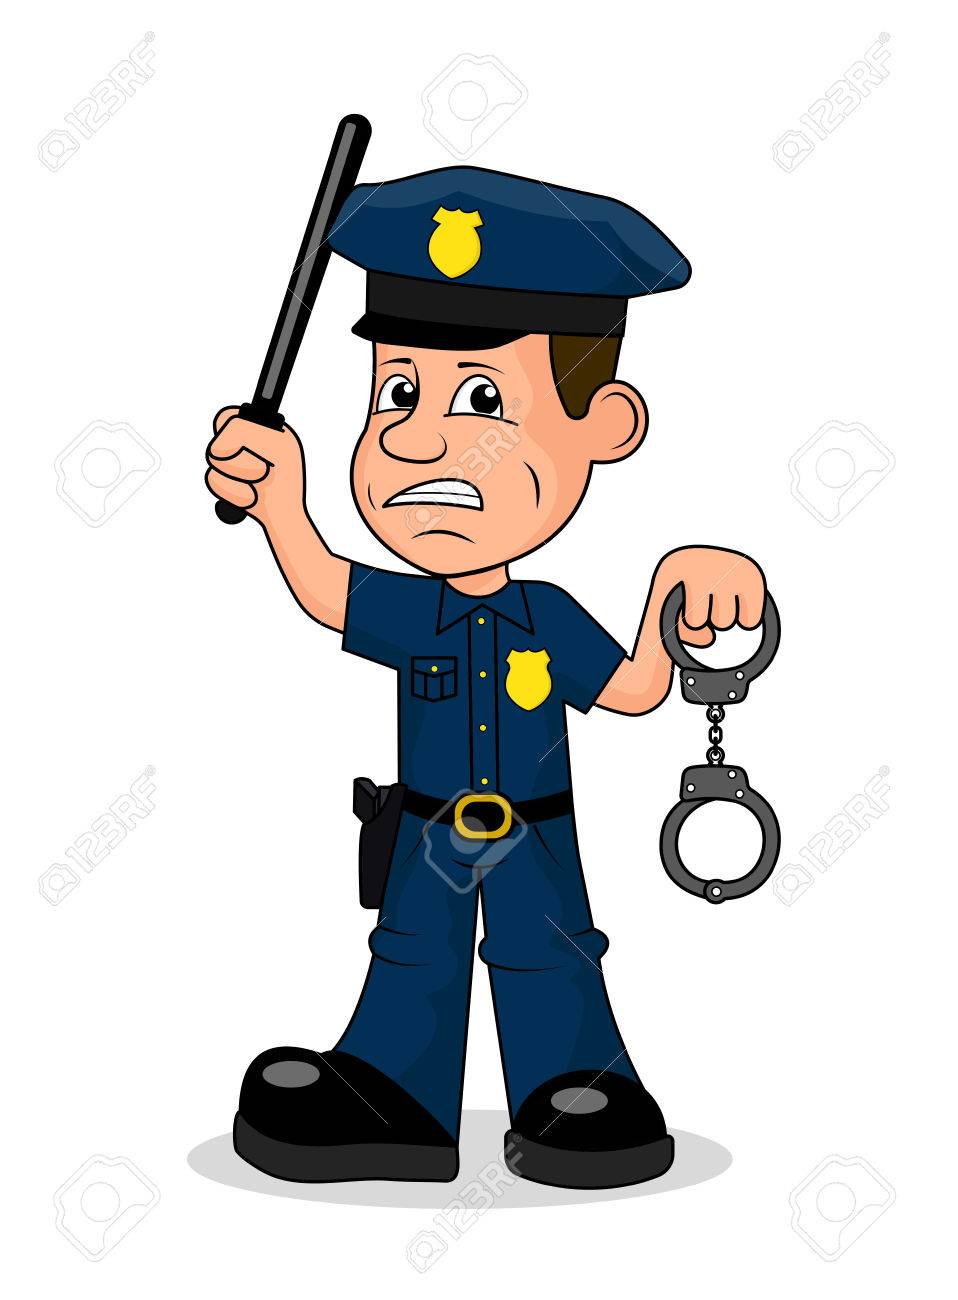 angry police officer vector illustration royalty free cliparts rh 123rf com police victorville police vector art